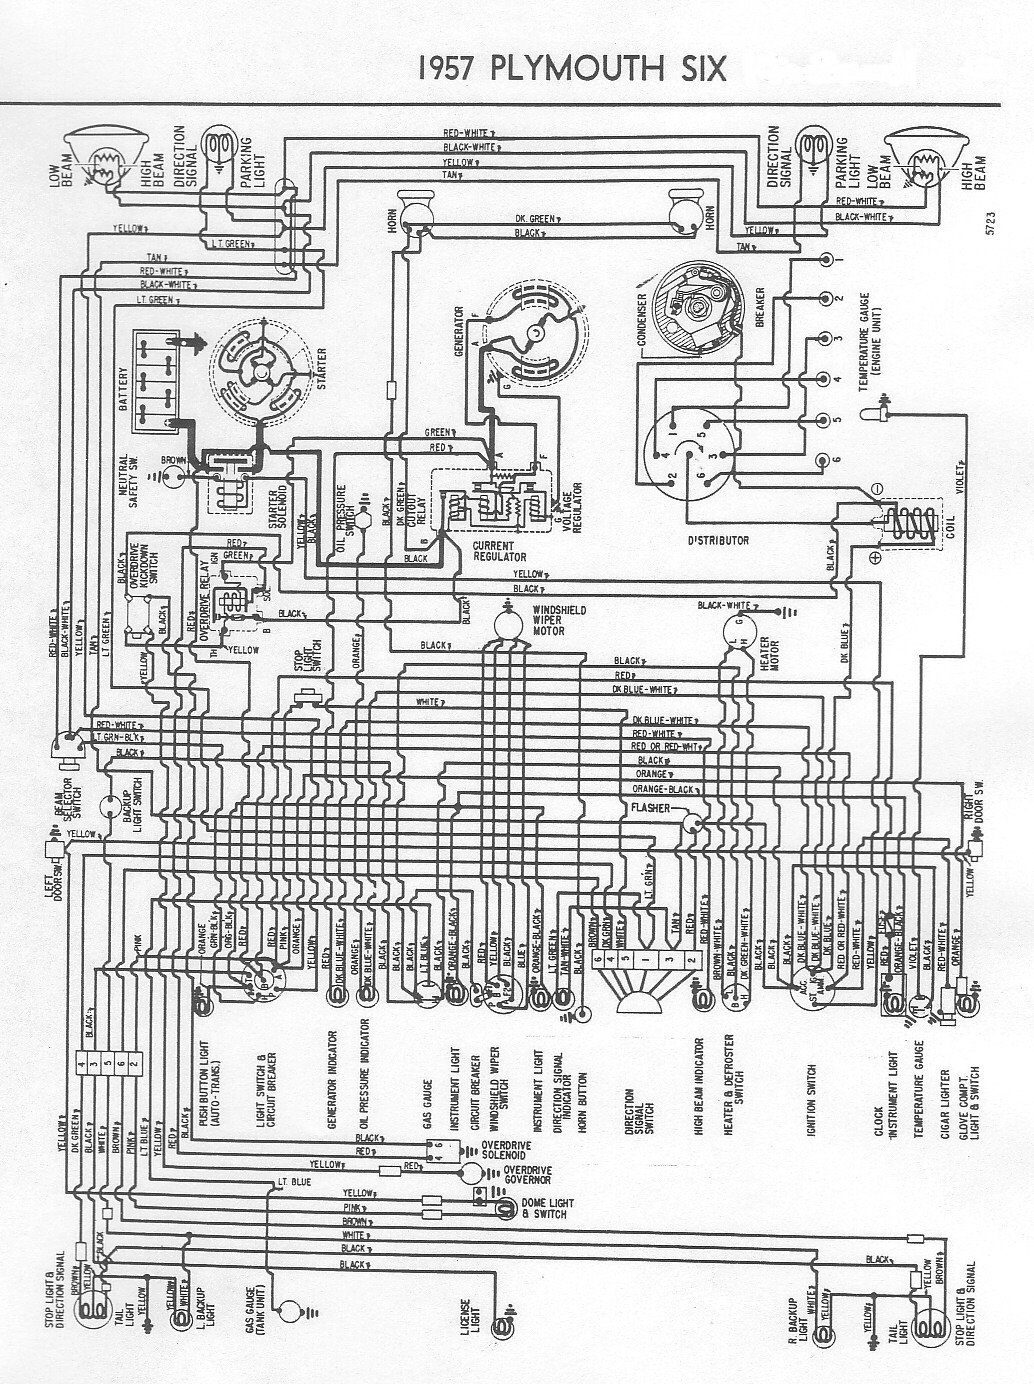 i am looking for the engine wiring diagram for a 1957 dodge truck rh justanswer com Dodge Ram Radio Wiring Diagram 95 Dodge Truck Wiring Diagram